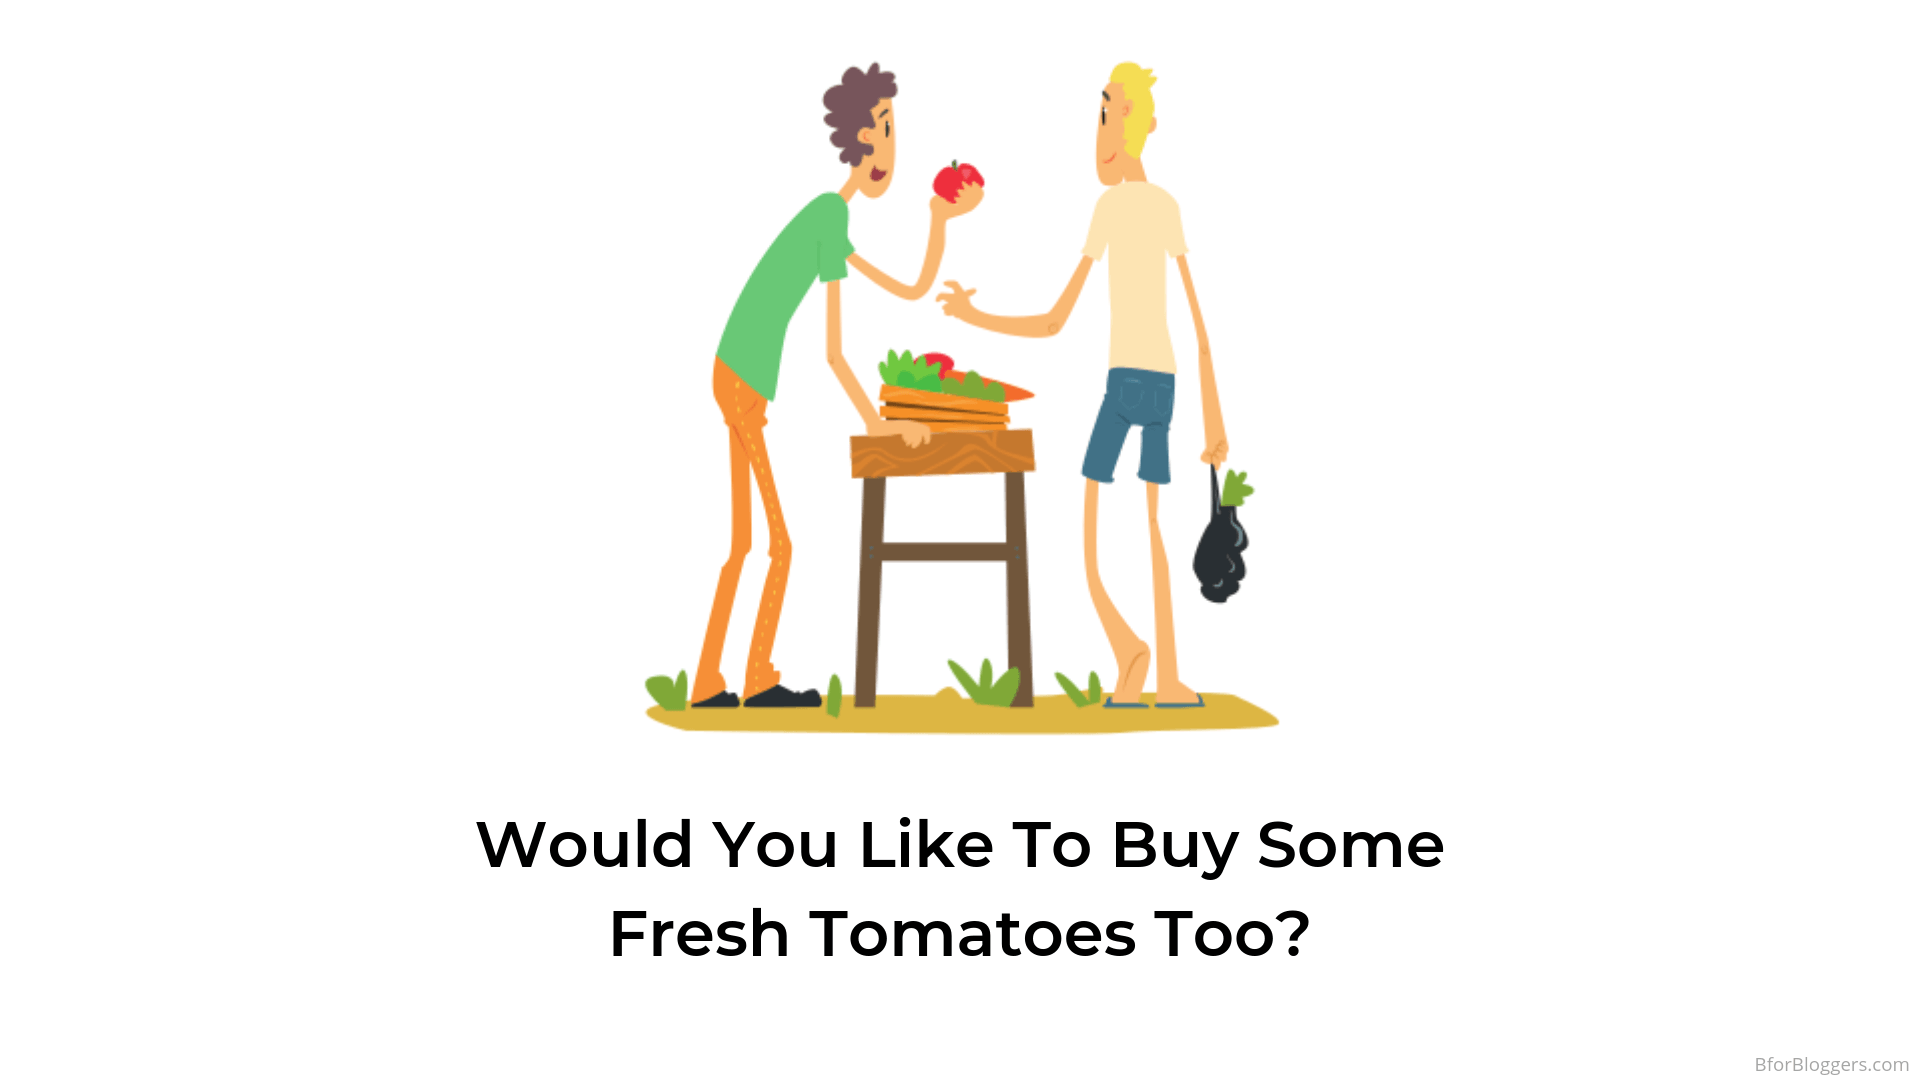 Would-You-Like-To-Buy-Some-Fresh-Tomatoes-Too-up-selling-example